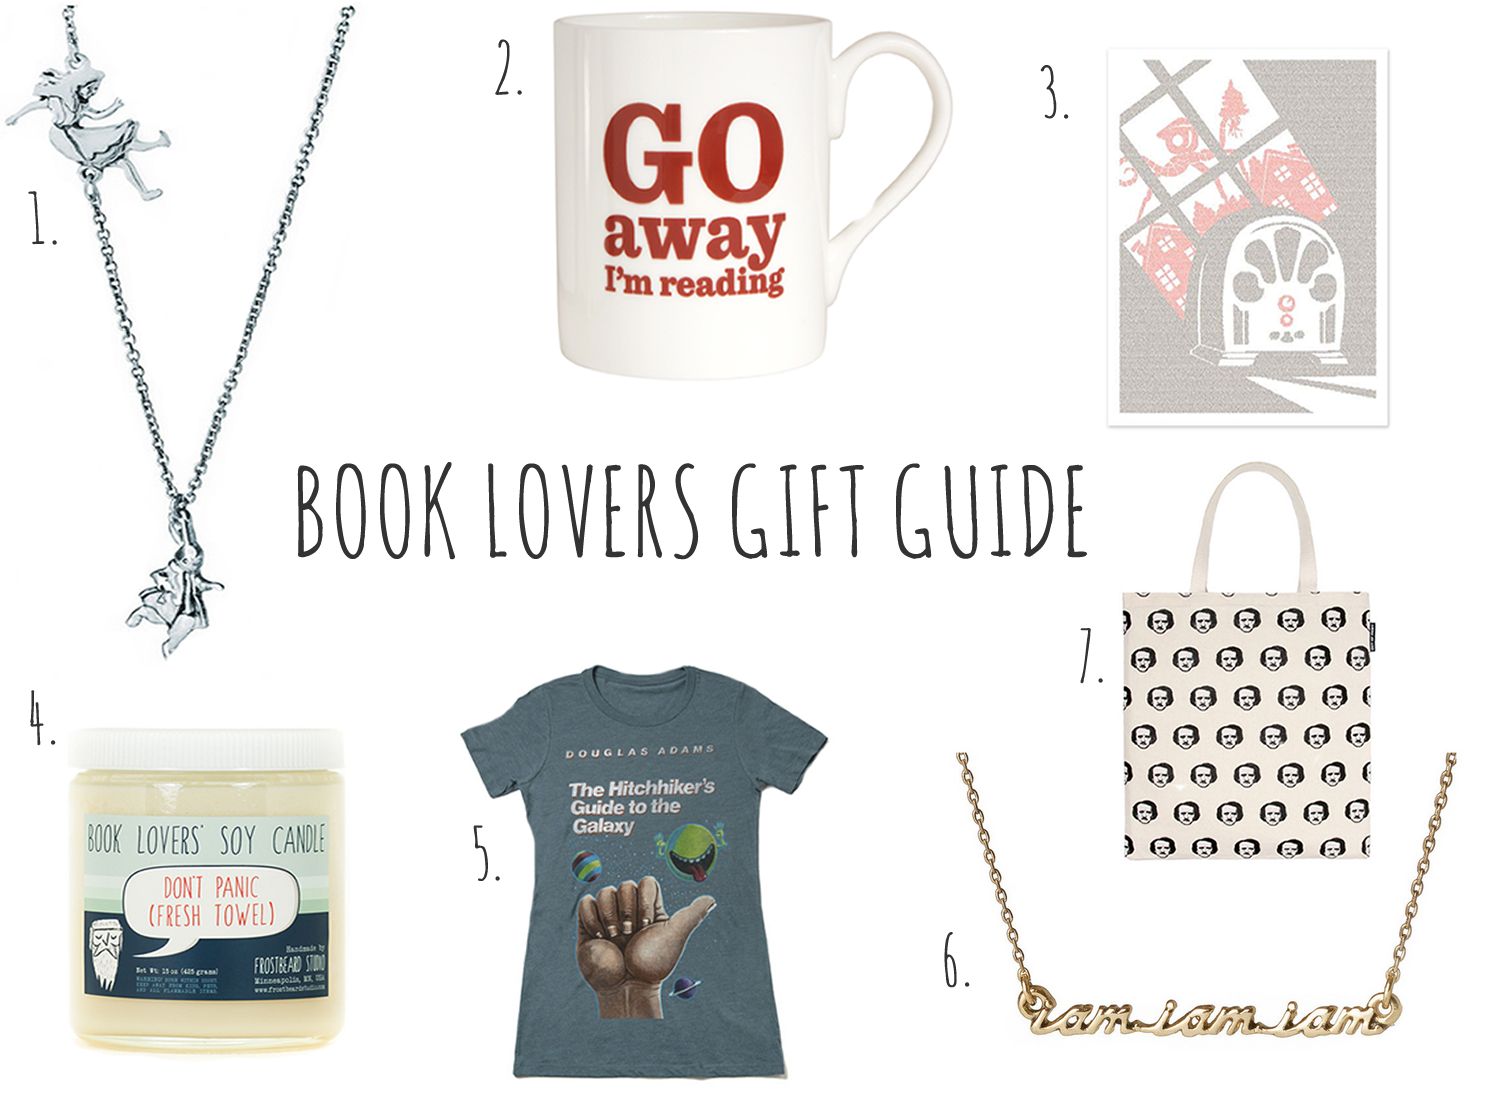 thatu0027s why i have put together this list of some of the best gifts that i have found from across the internet